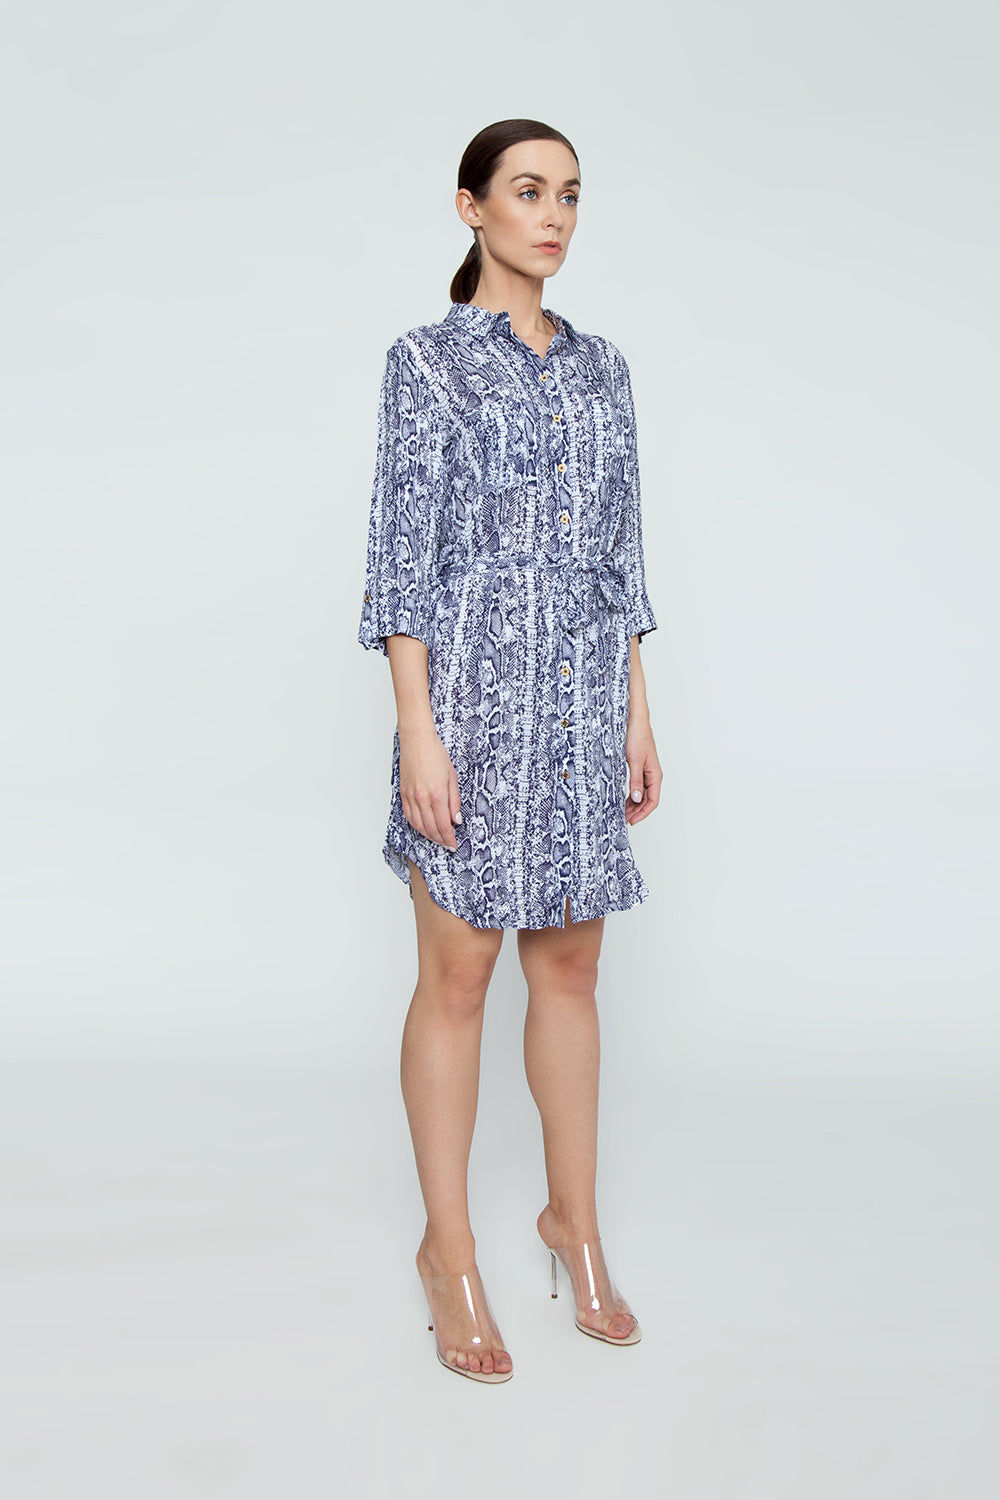 HEIDI KLEIN Relaxed Button Up Shirt Mini Dress - Blue Animal Print Dress | Blue Animal Print| Relaxed Button Up Shirt Mini Dress - Blue Animal Print Features:  A rounded hem that dips at the back and a drawstring for an adjustable fit and a flattering silhouette. Neat fitting on the shoulders with slightly shaped side seams.   Sleeves can be worn long or tacked up with sleeve tabs for versatility. Front View